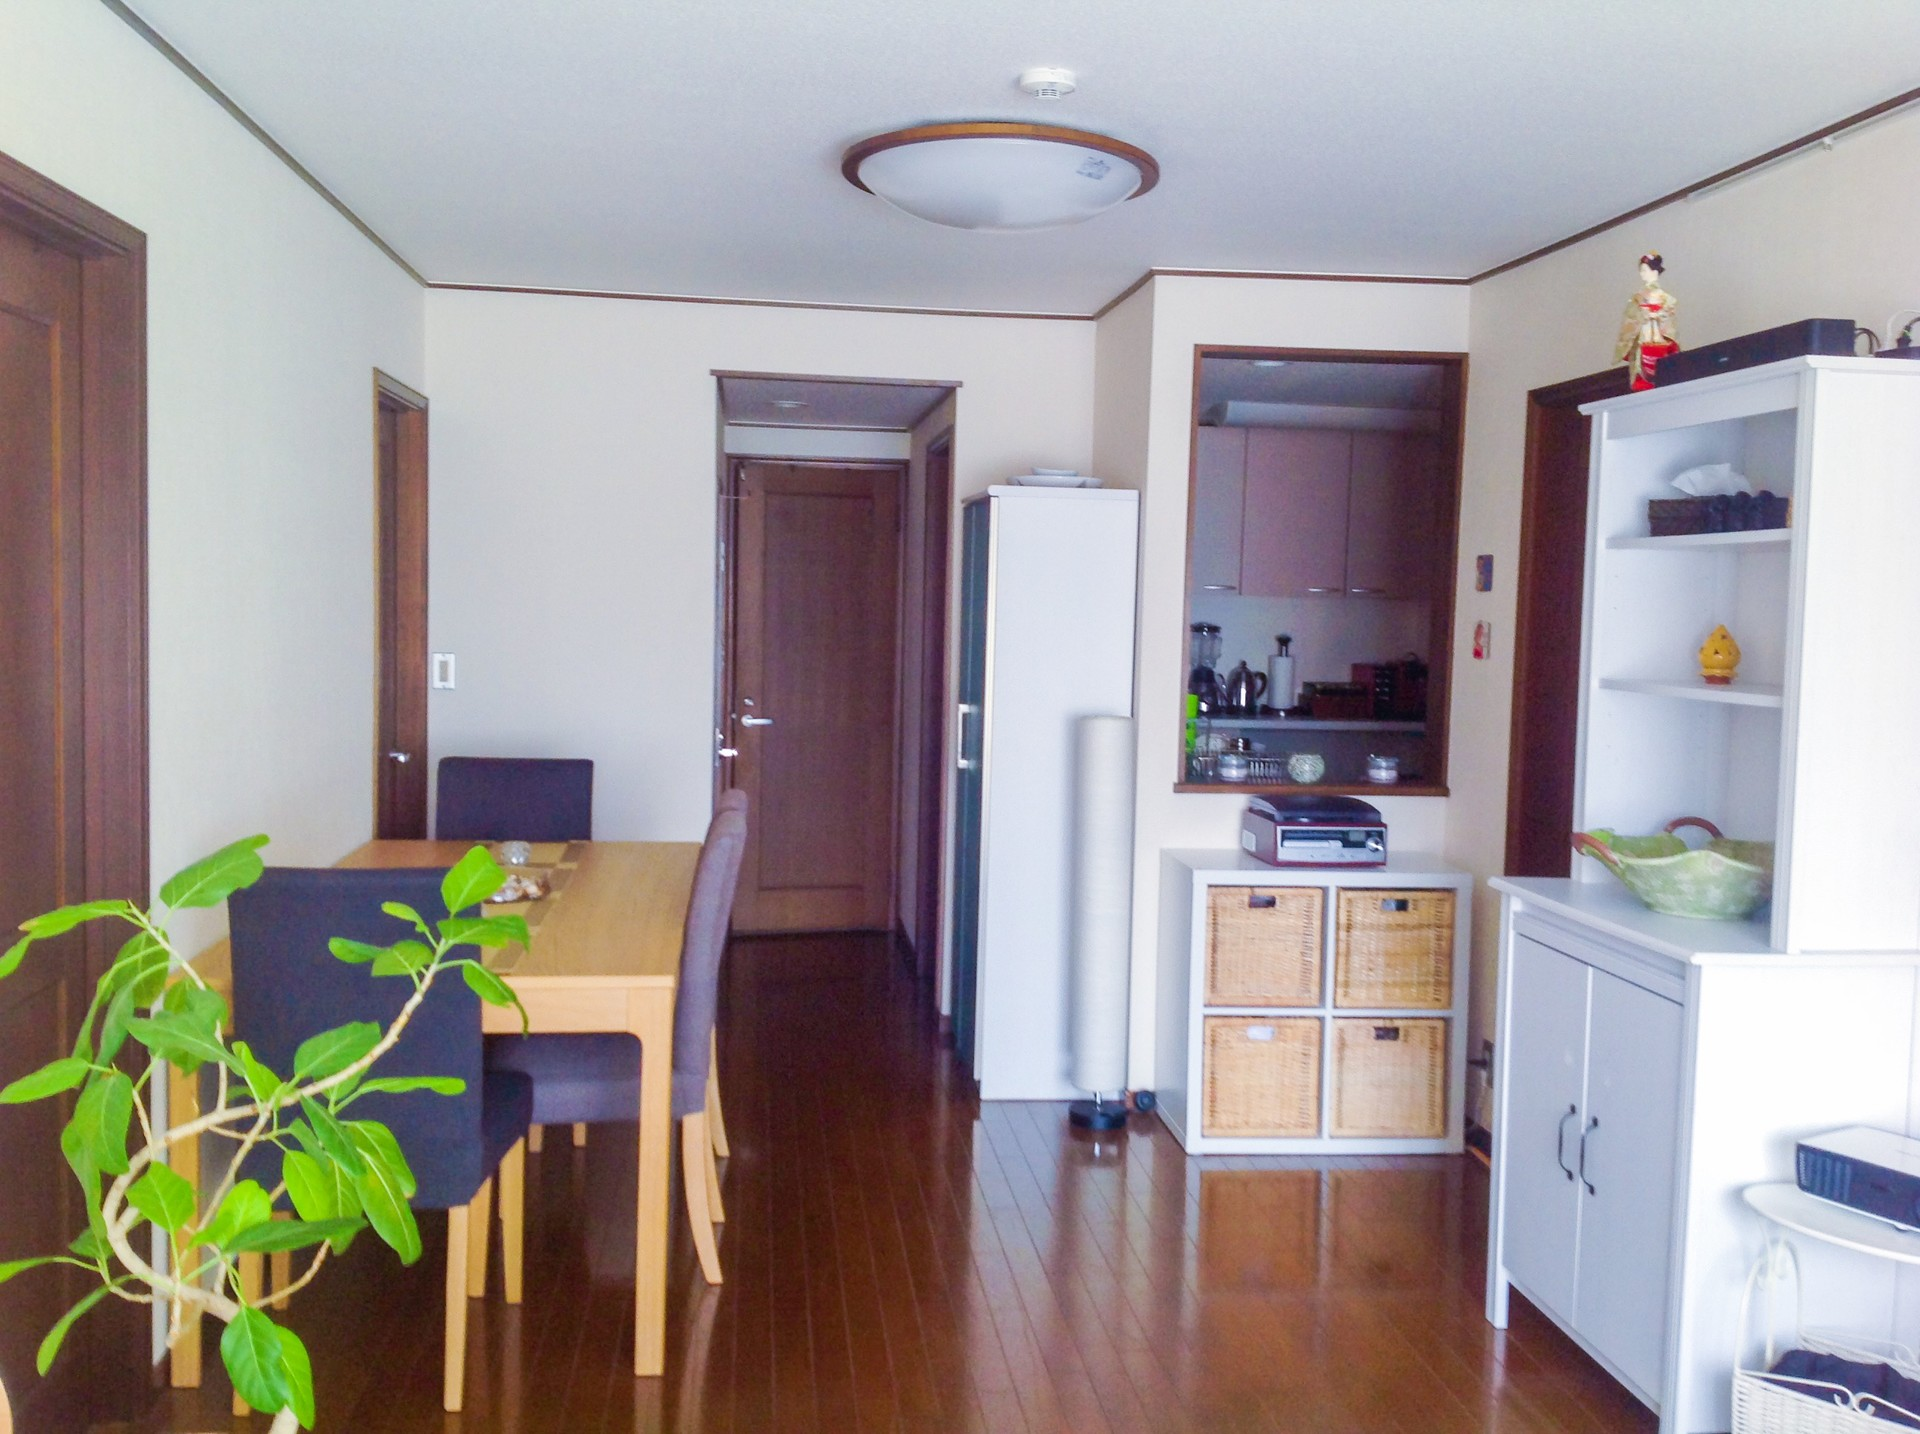 20sqm Spacious Clean Fully Furnished Room With Walk In Closet In A Big House With Terraces Room For Rent Tokyo